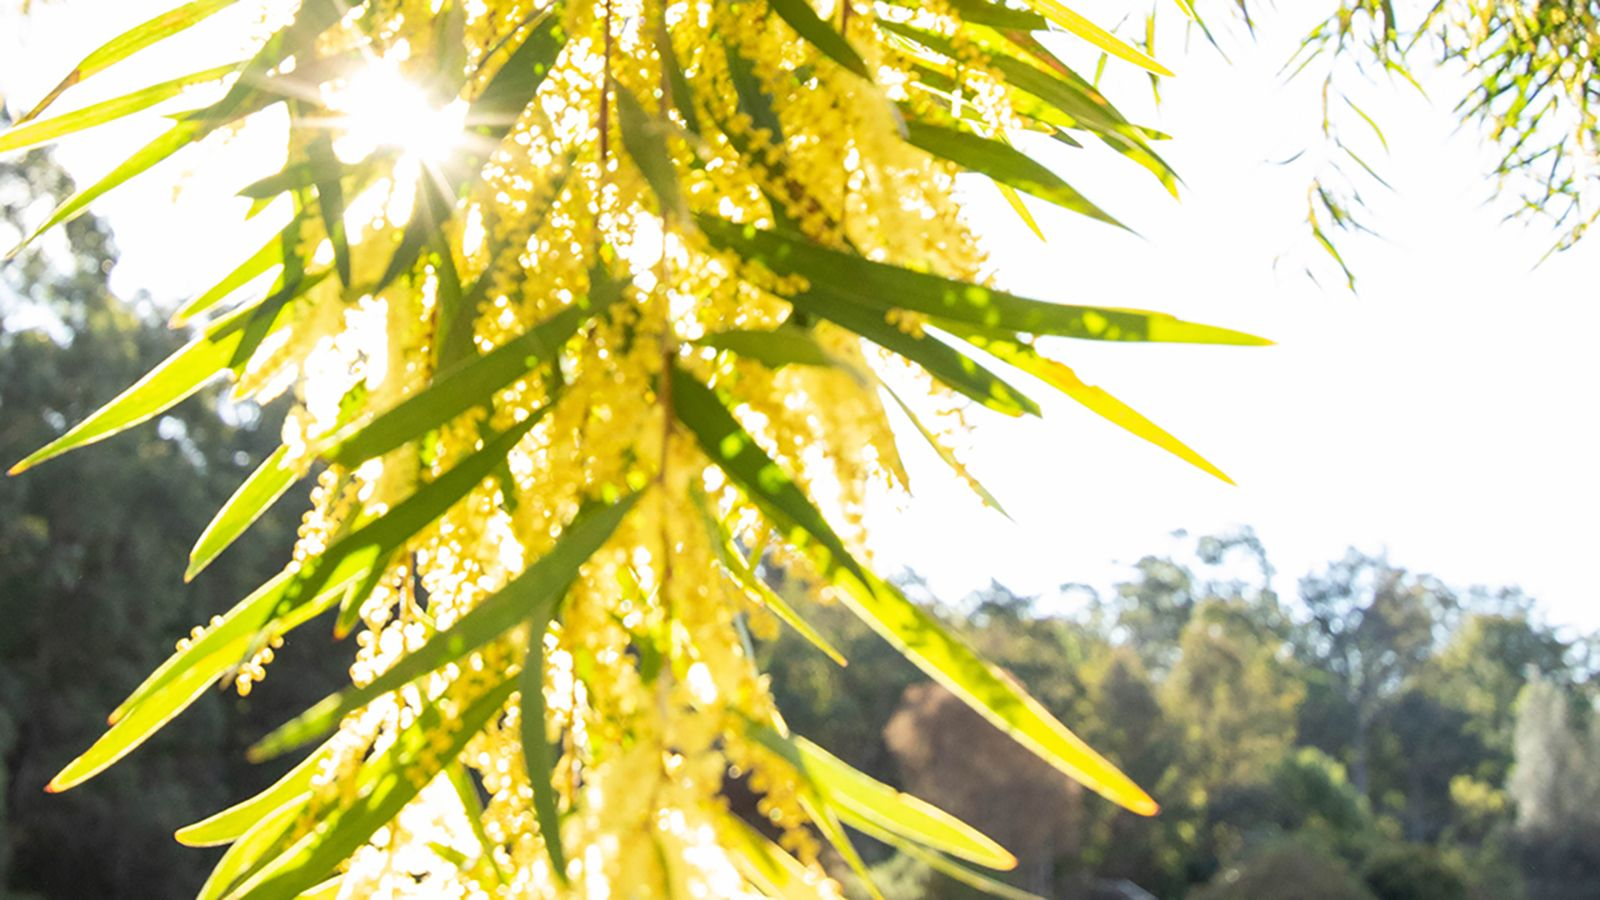 Wattle leaves and pollen banner image